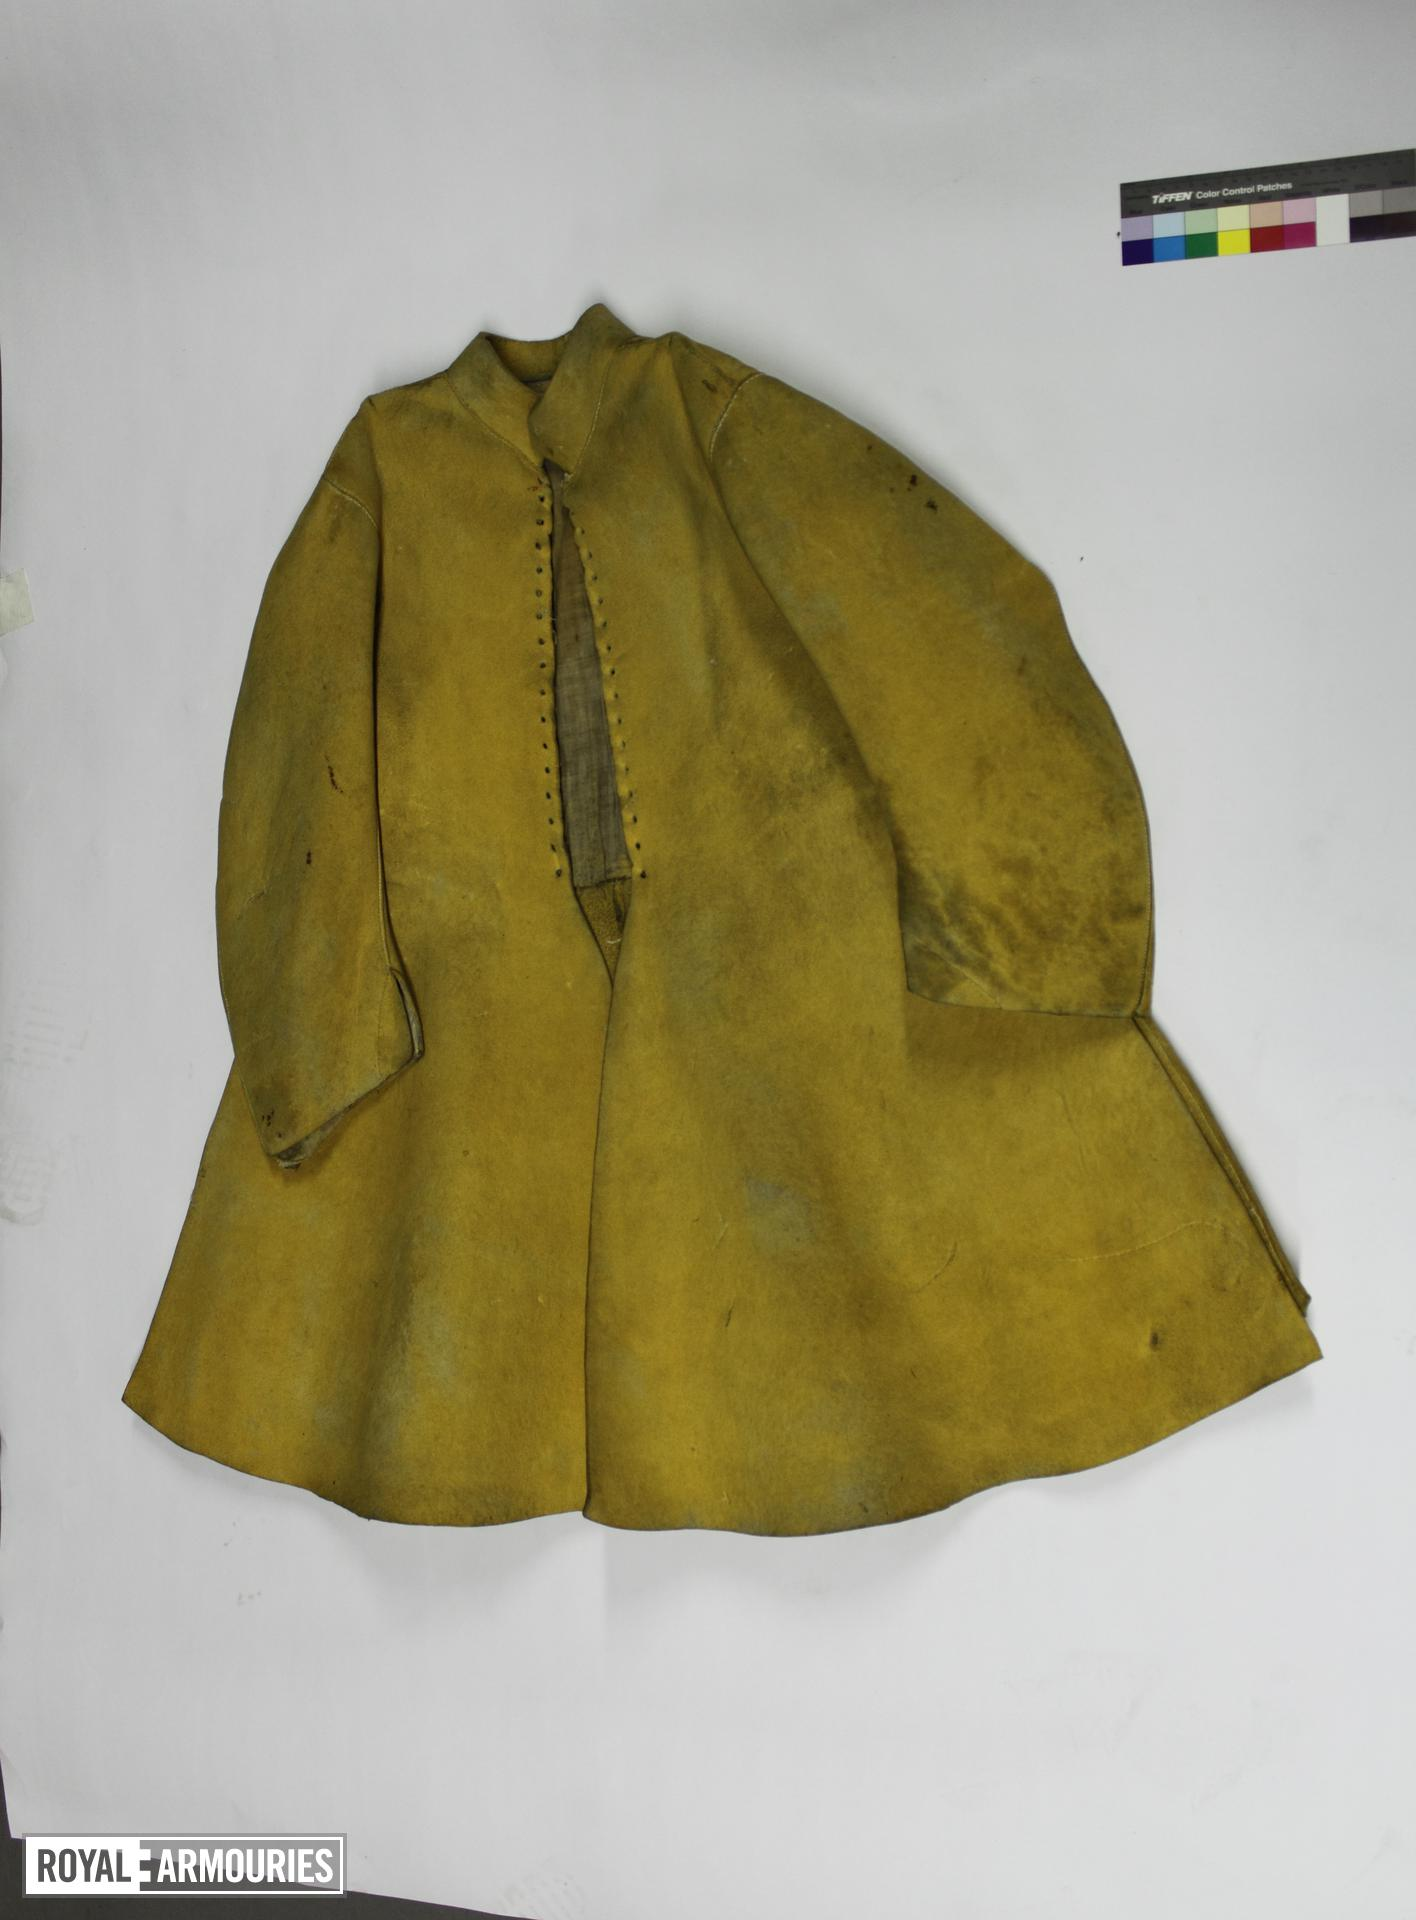 Buff coat Littlecote collection